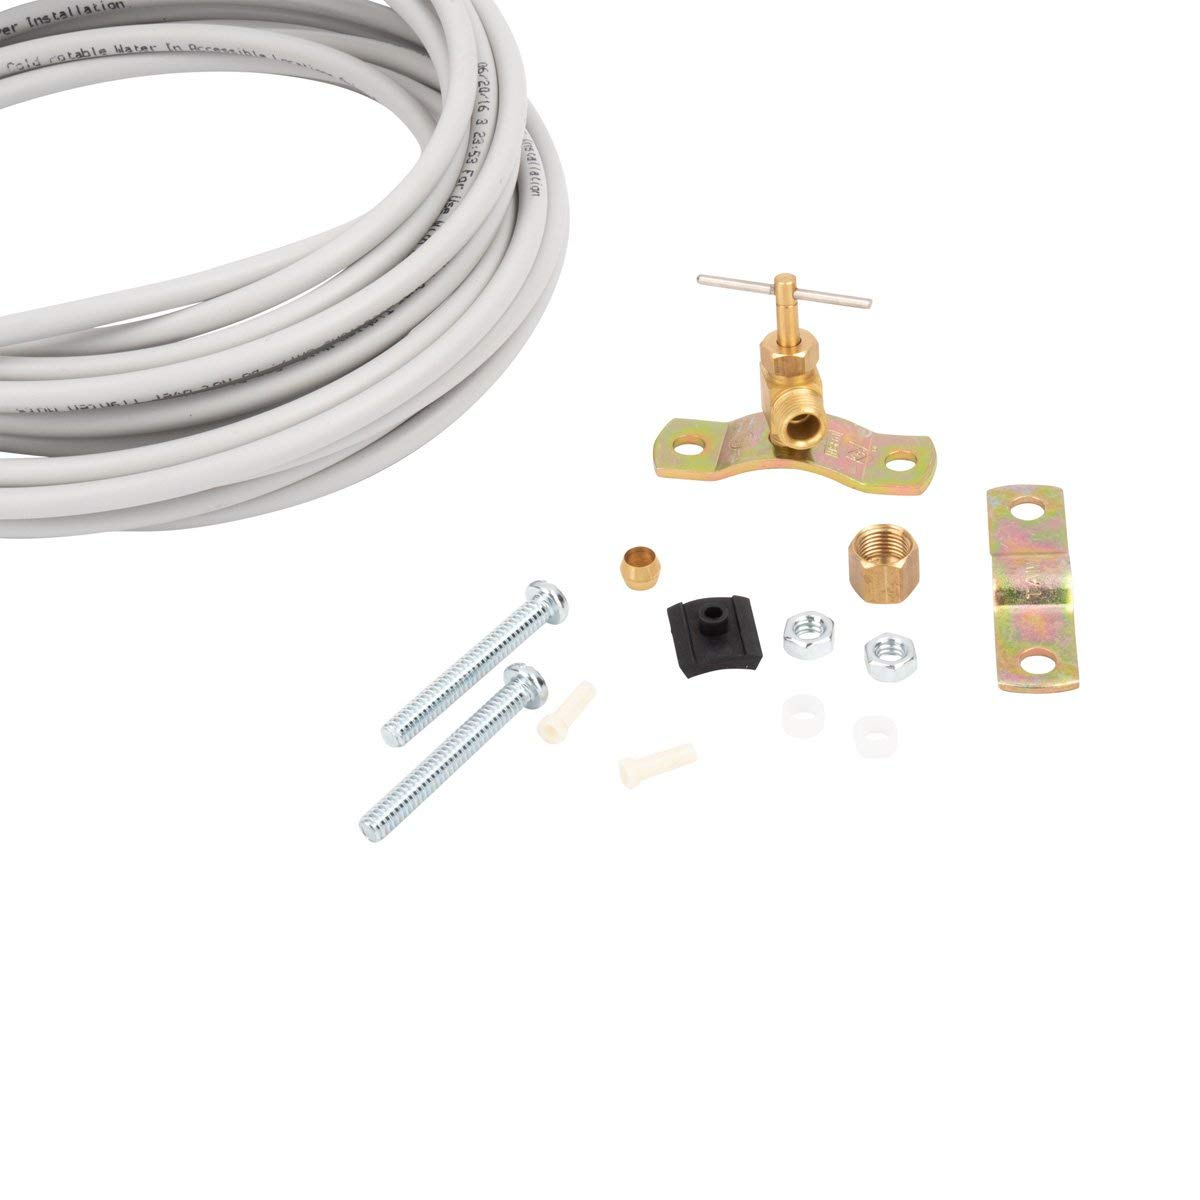 Buy Flexcy Saddle Angle Adjuster With Easy Installation Adjustable Cpsc Aluminum Wiring Complete Ice Maker Kit 25 Pex Tubing To Use